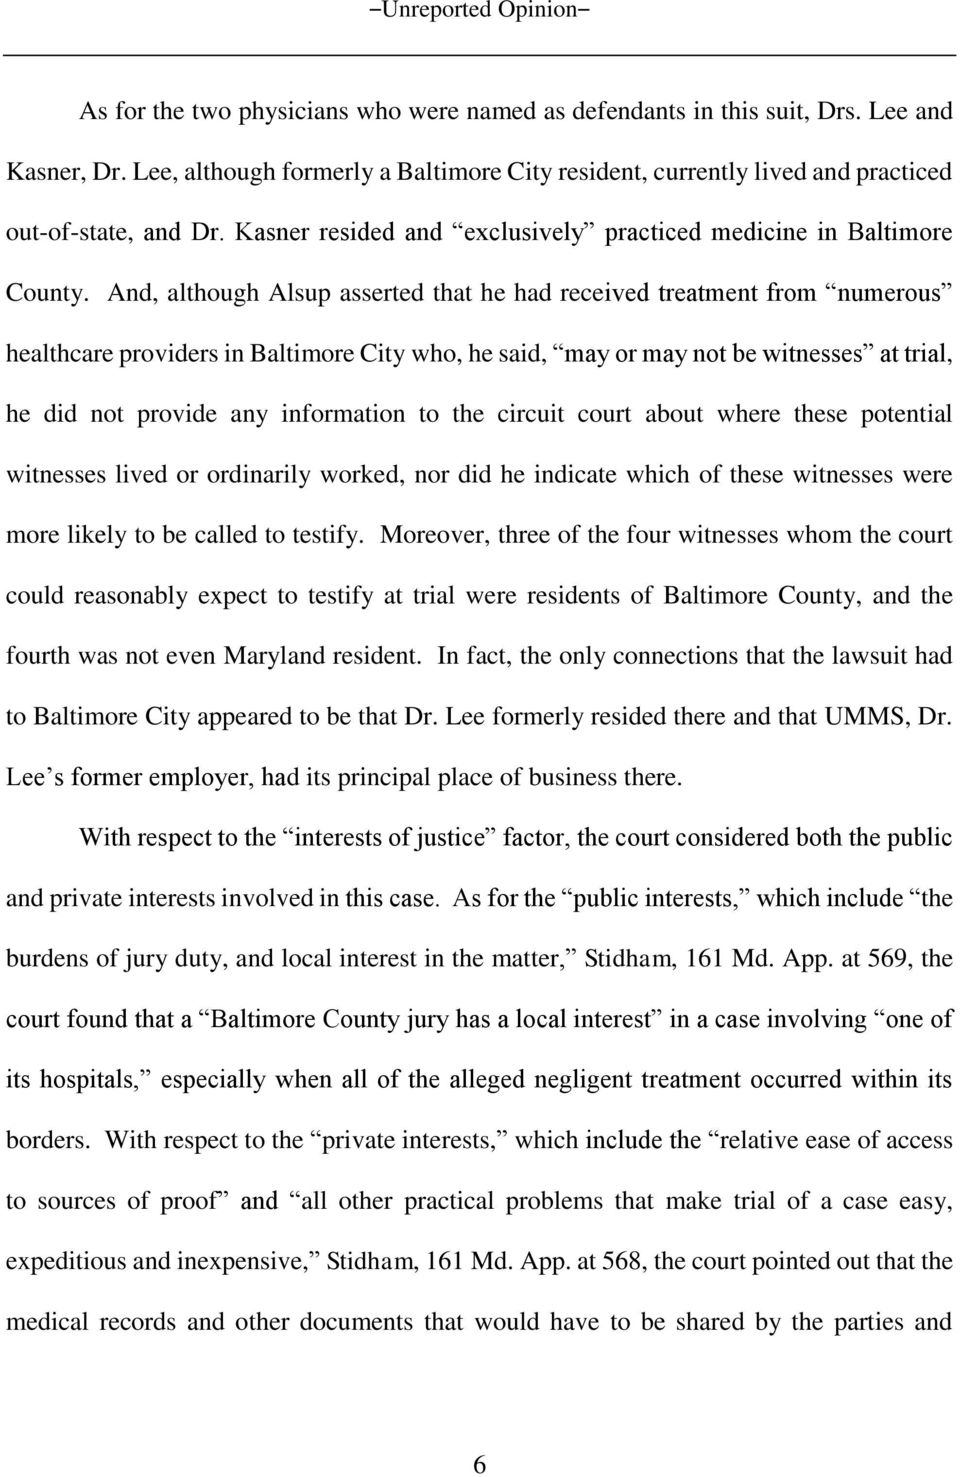 And, although Alsup asserted that he had received treatment from numerous healthcare providers in Baltimore City who, he said, may or may not be witnesses at trial, he did not provide any information